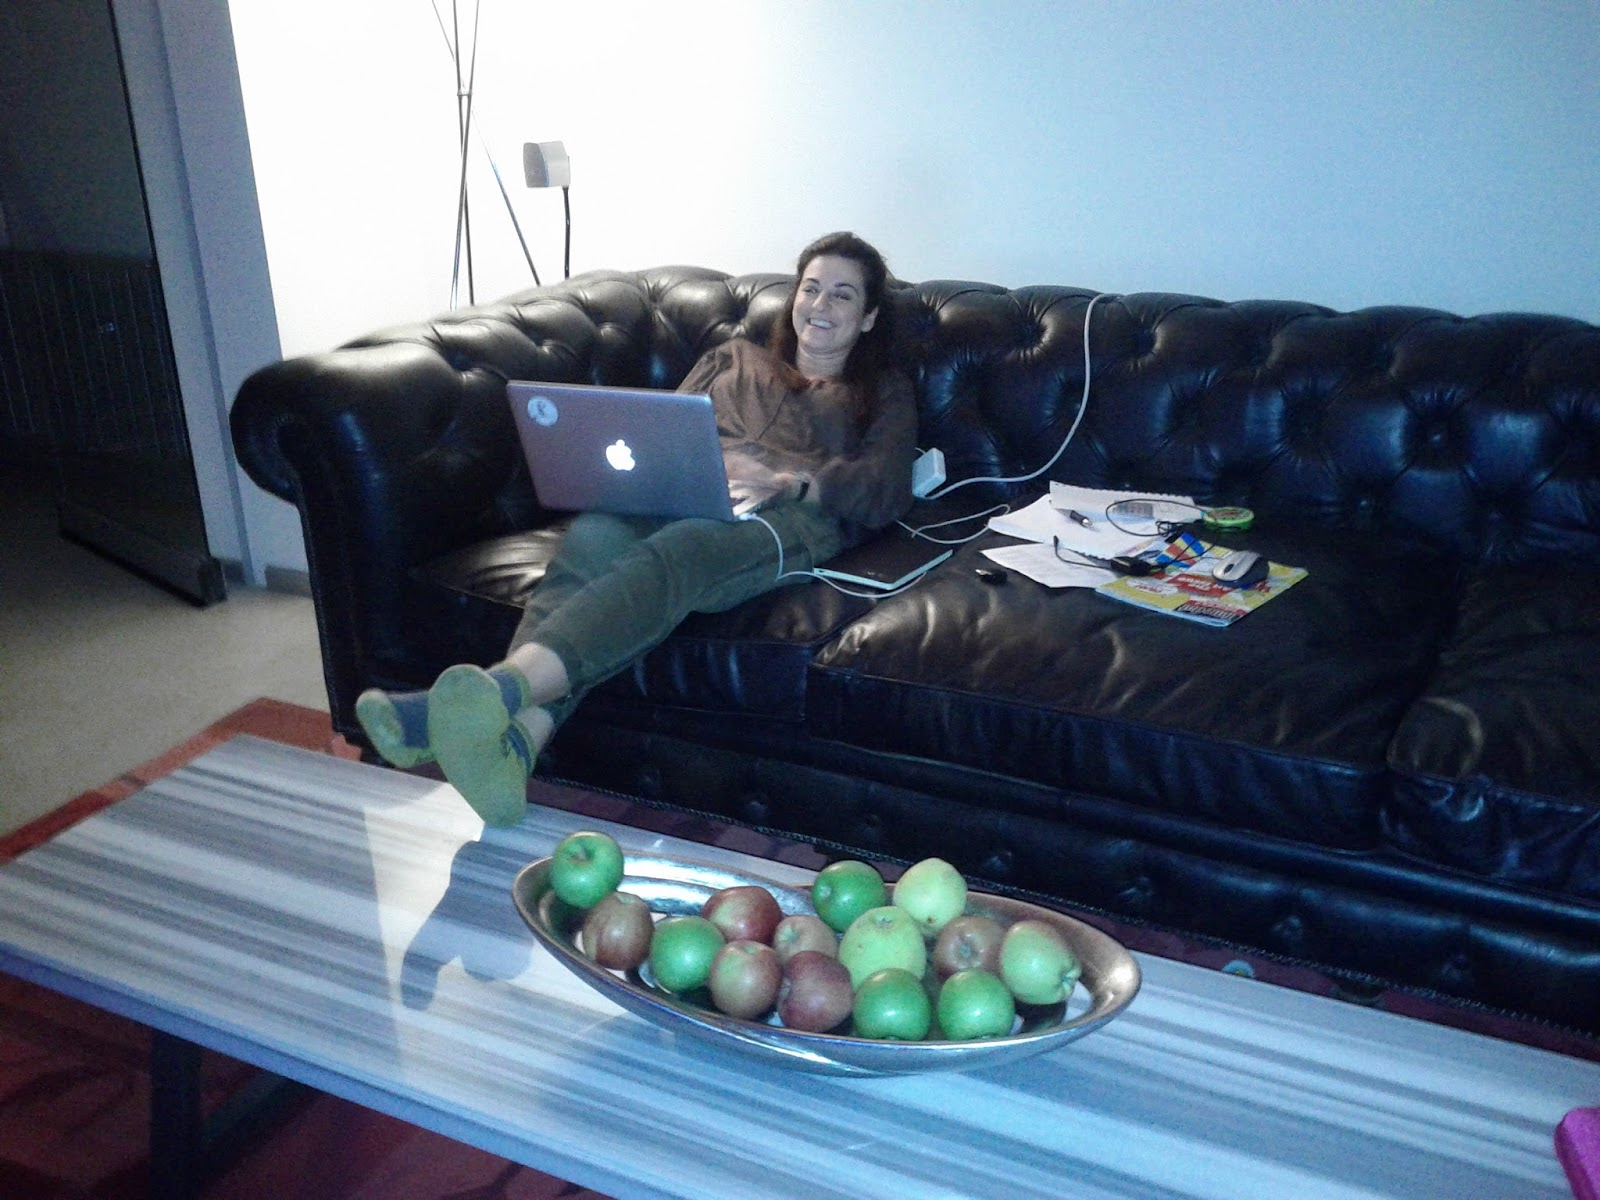 Leyla on her Mac